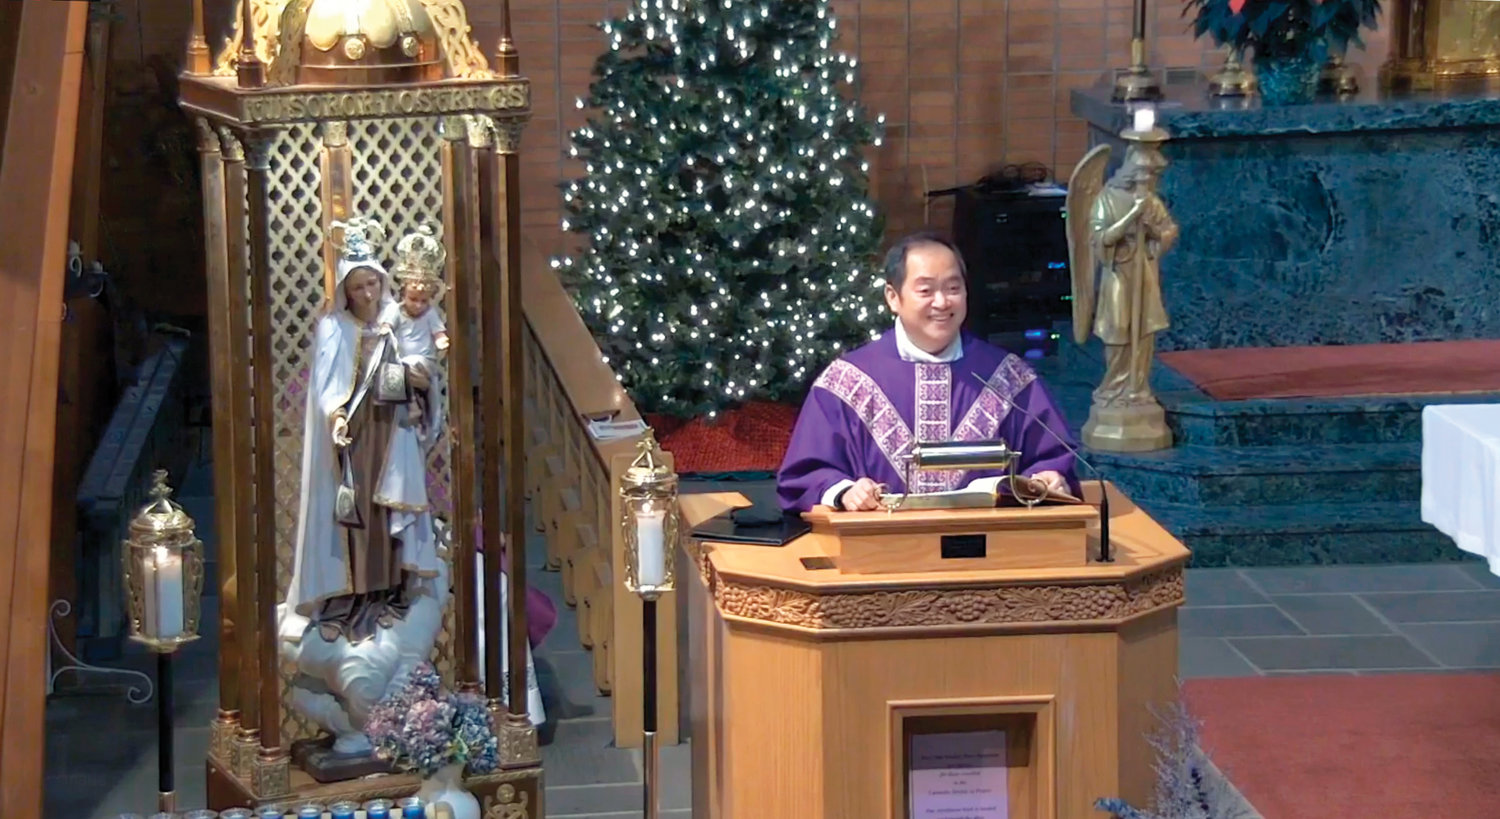 Father Reynor Santiago, parochial vicar of St. Stephen, the First Martyr parish in Warwick and a native of the Philippines, delivers his homily.